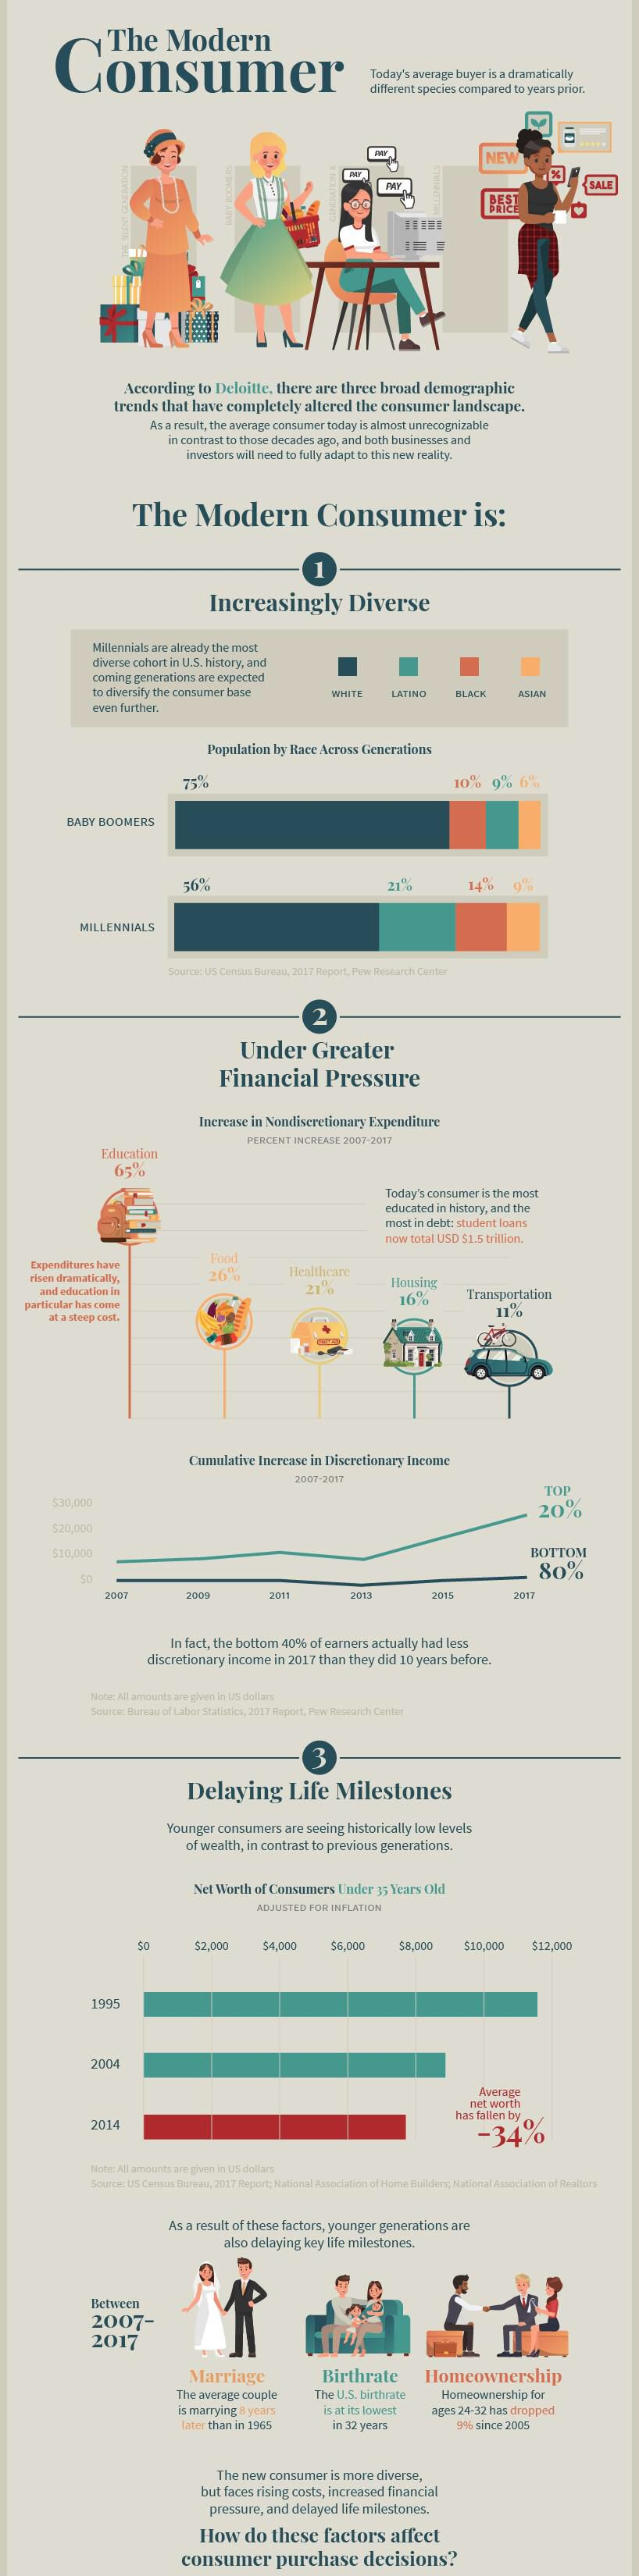 Pin by Aus on Infographics & Guides Knowing you